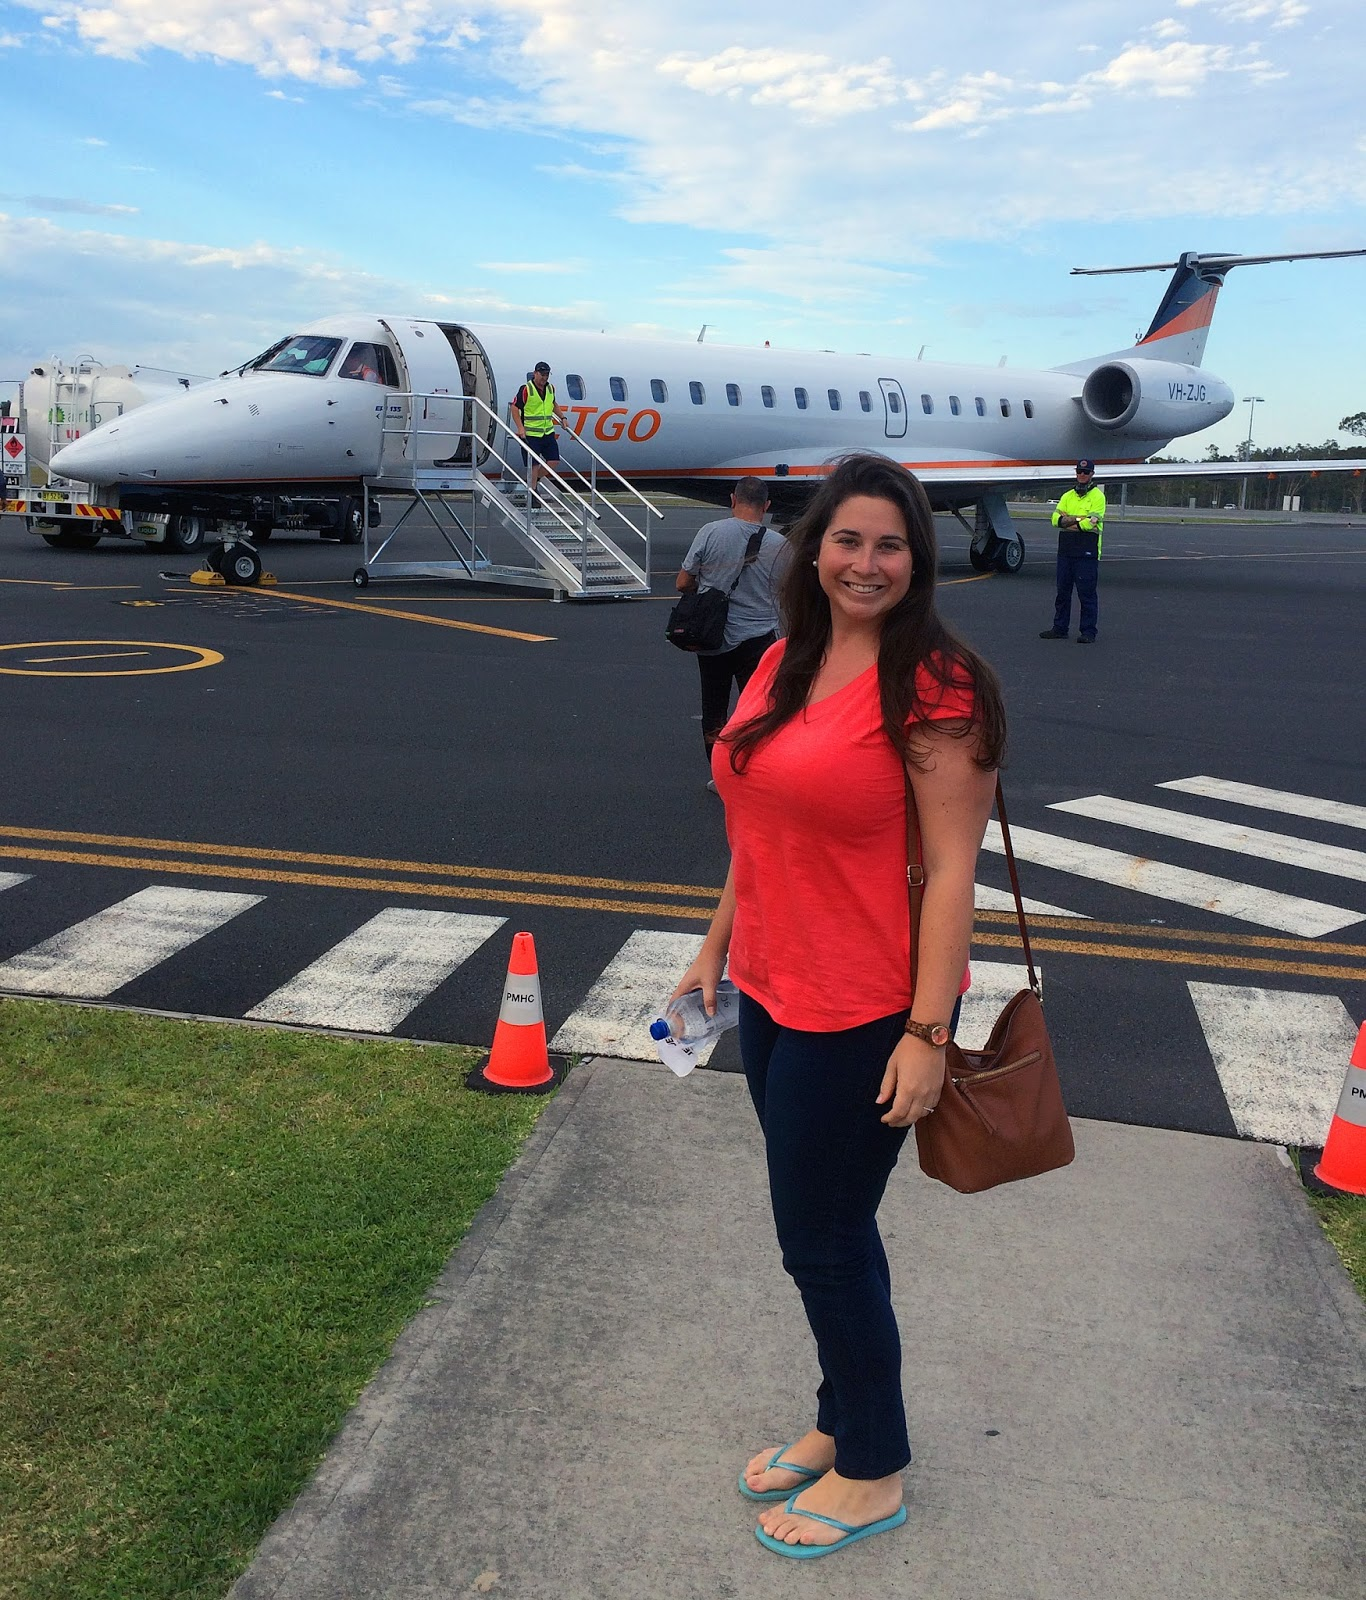 Girl boarding JETGO Australia Plane in Port Macquarie to Essendon